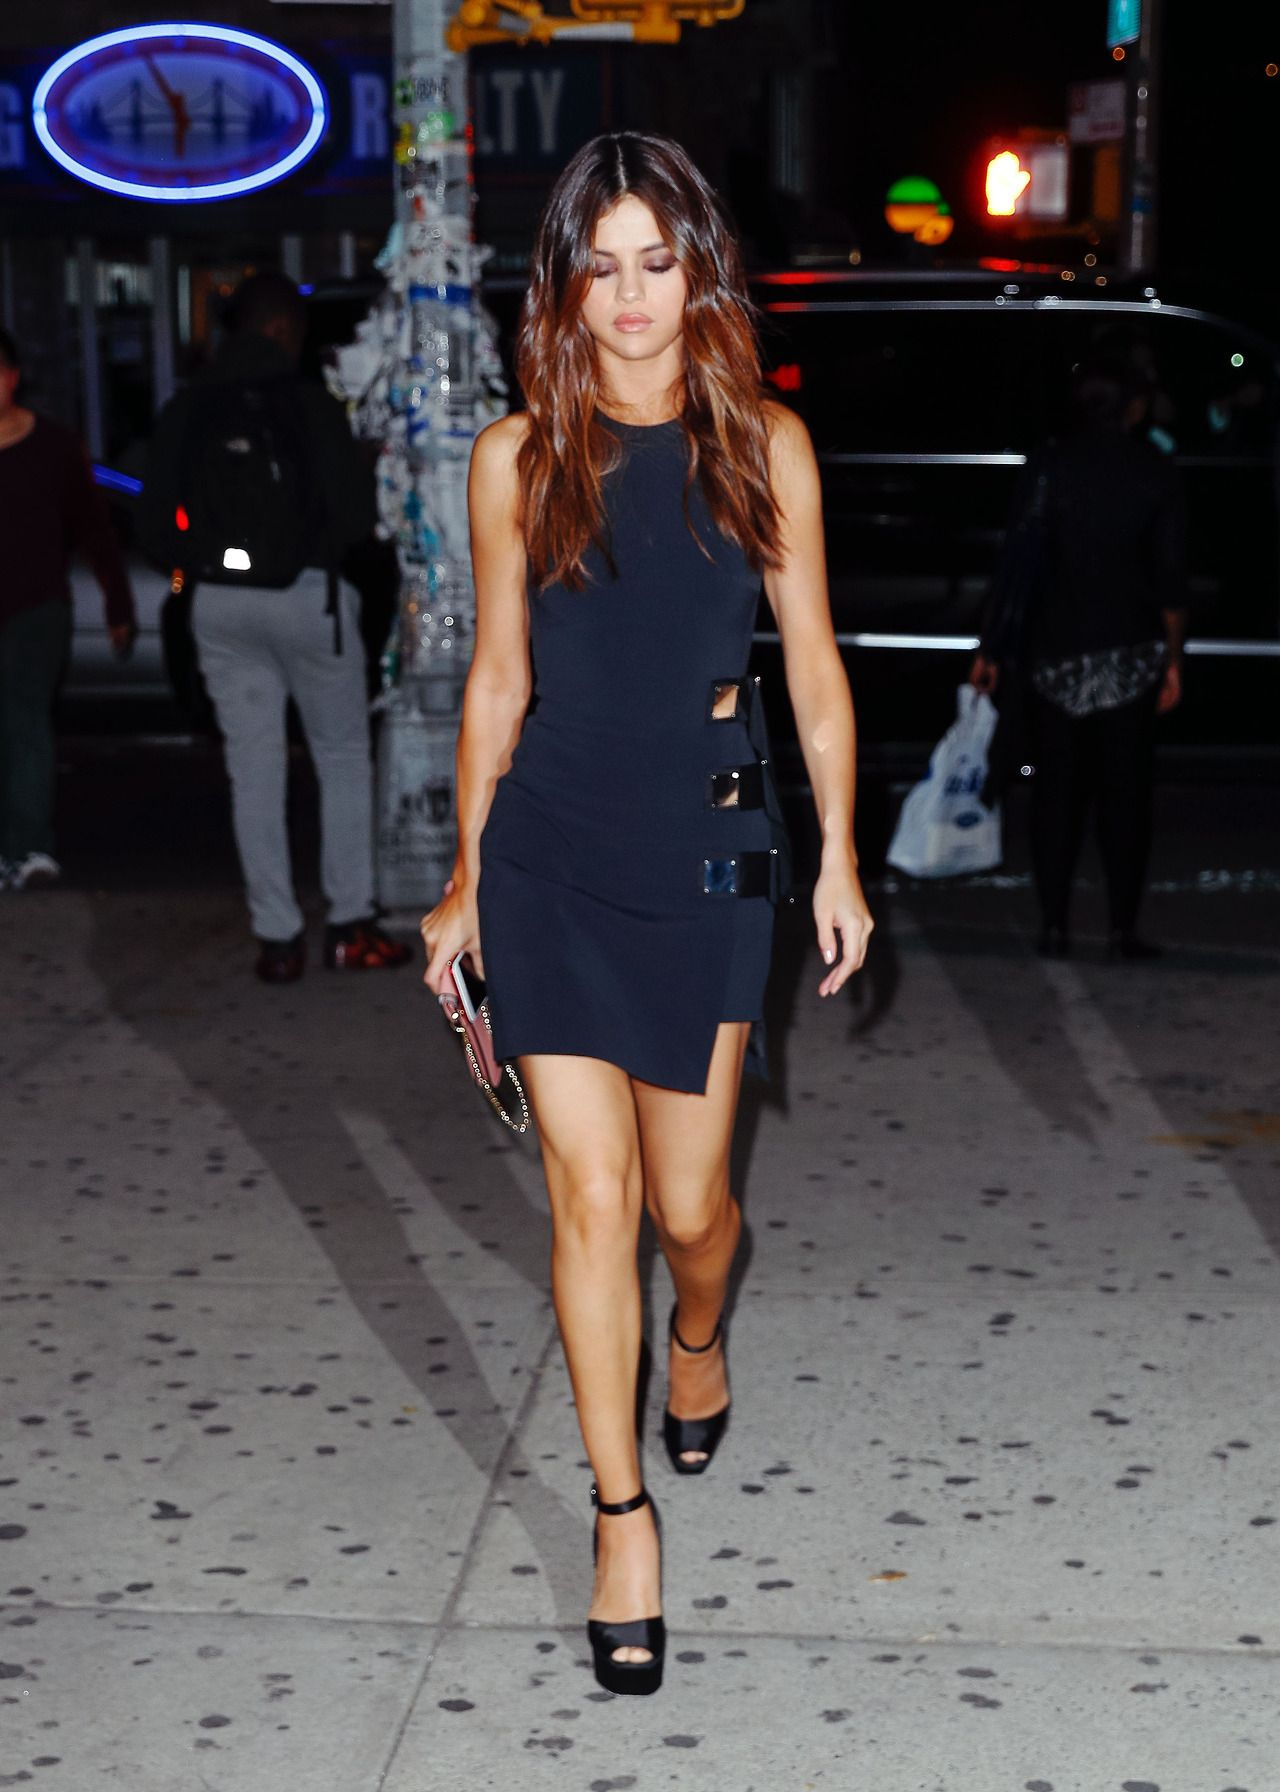 Selena Gomez News — June 3: [More] Selena seen out and about in New ...